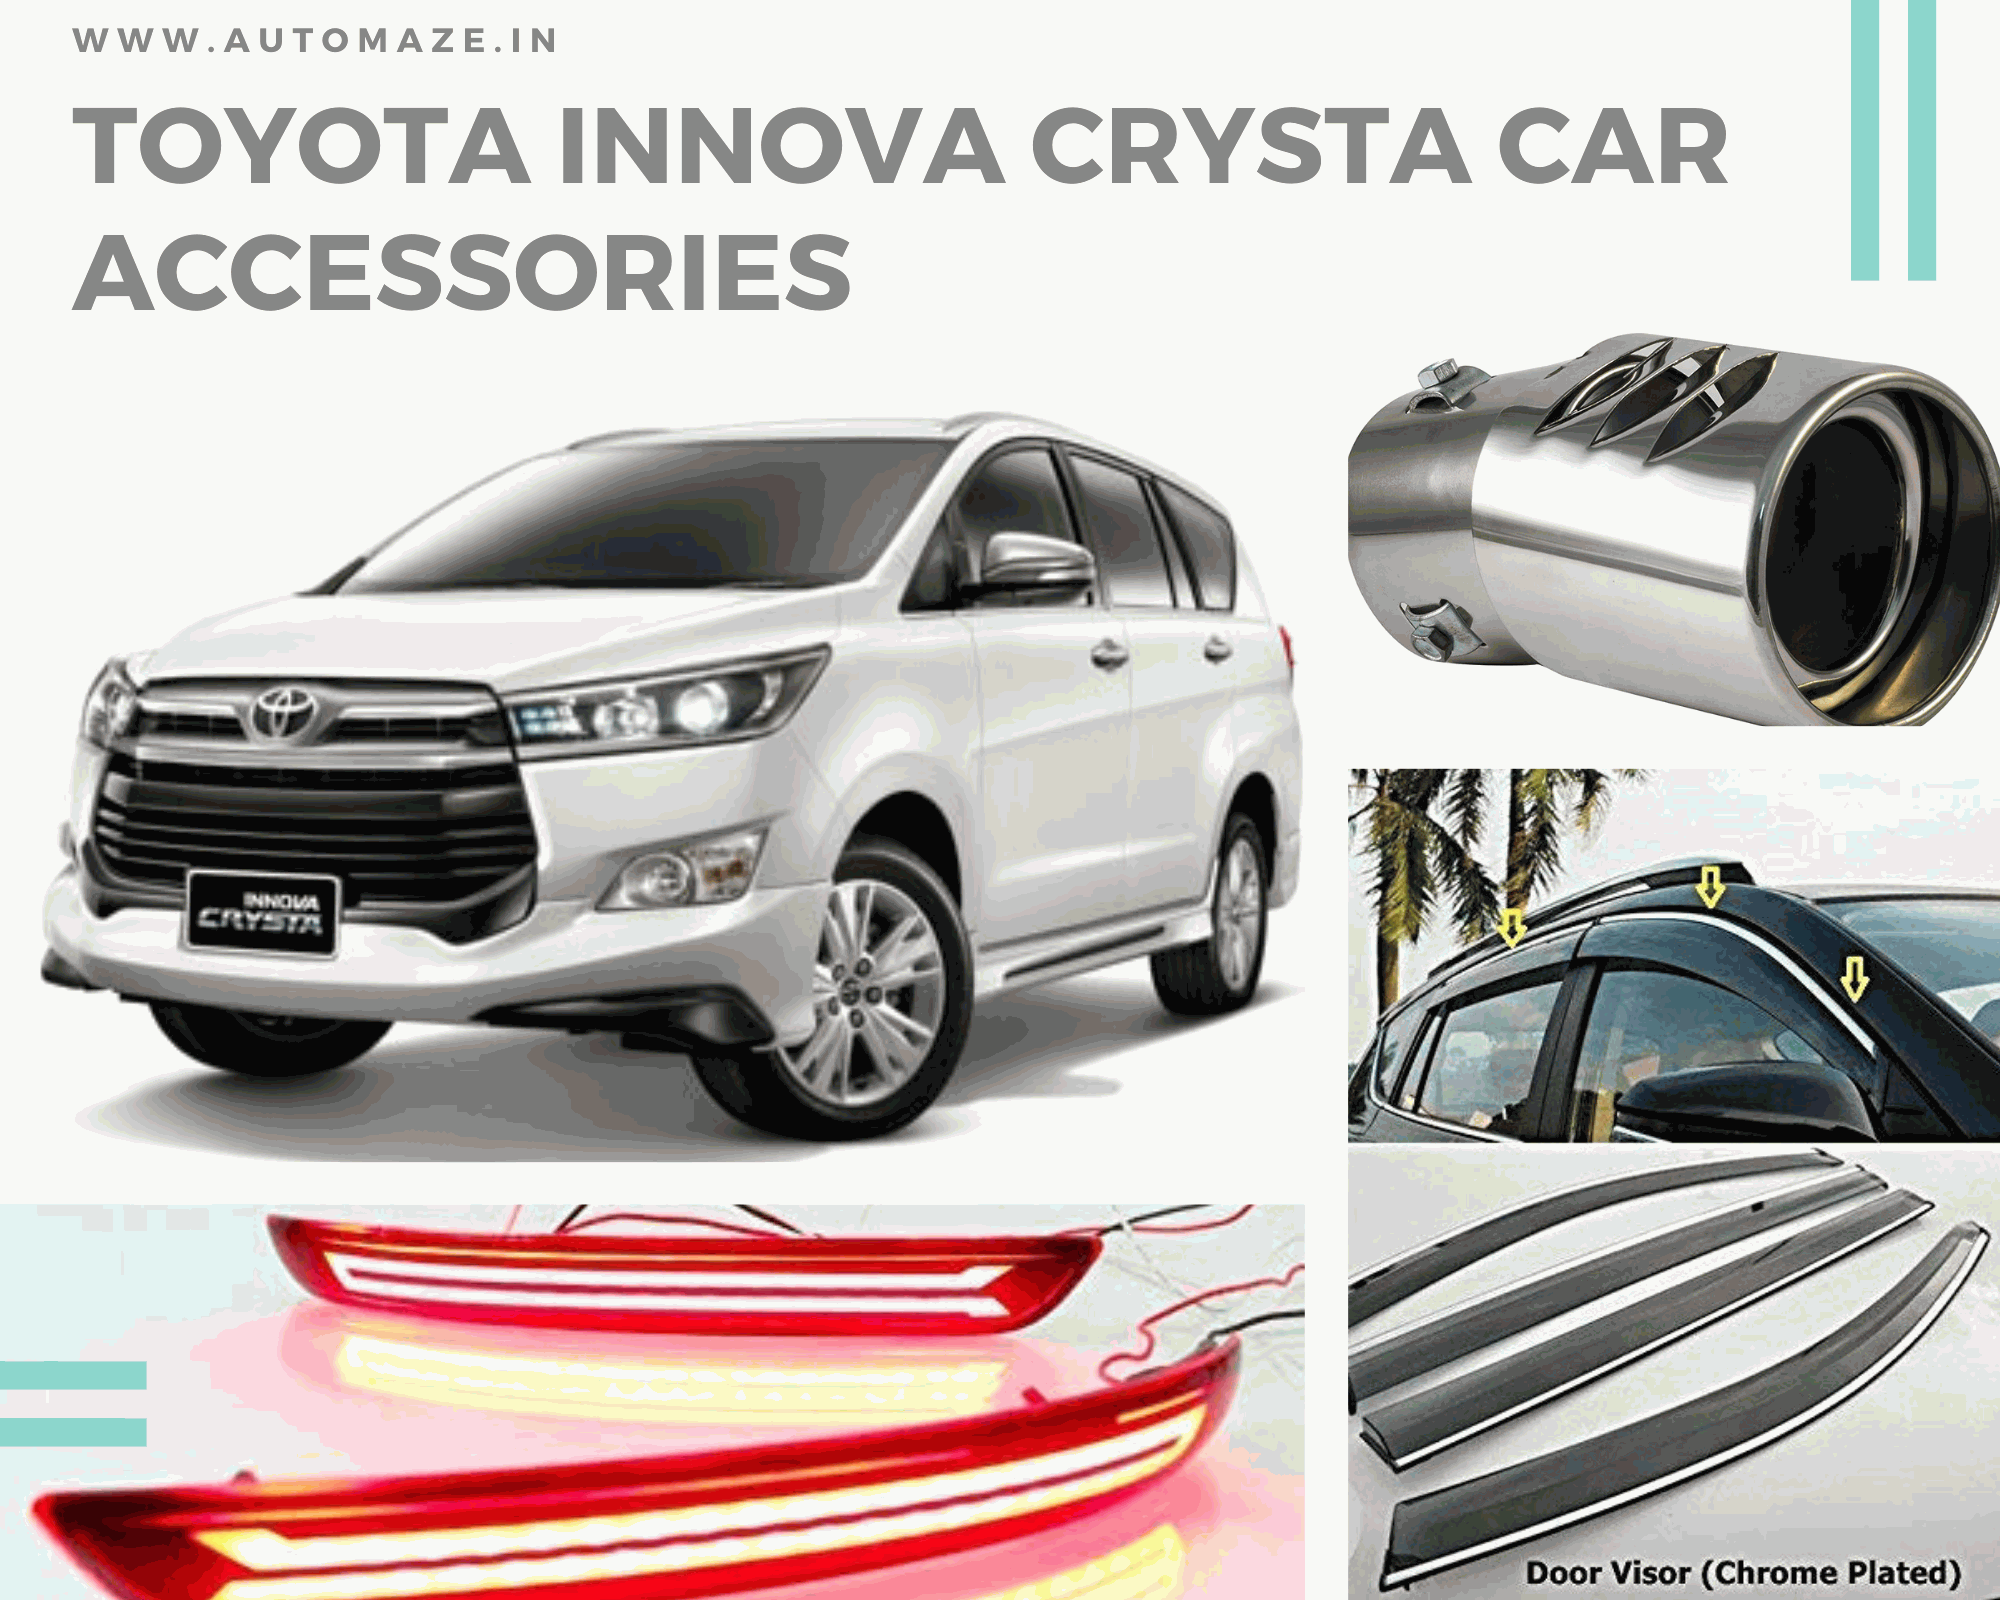 Buy Toyota Innova Crysta Car Accessories In 2020 Car Accessories Toyota Innova Car Interior Accessories